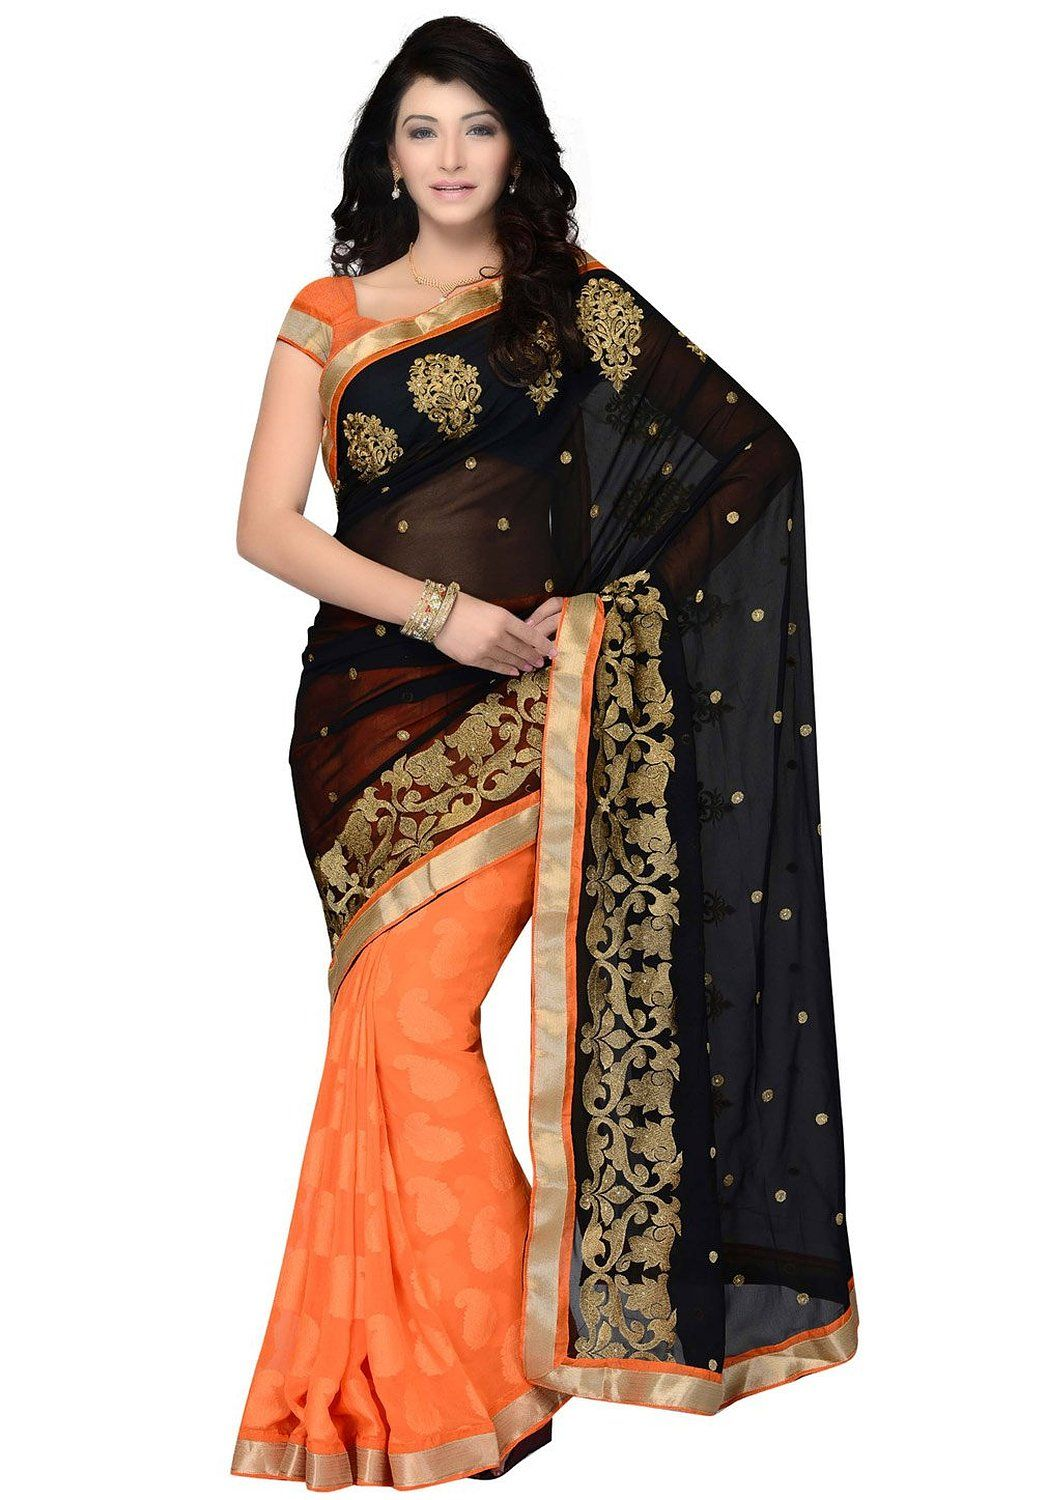 Best type of dress to wear to a wedding  Snazzy Wedding Wear Black u Orange Georgette Embroidered Ethnic